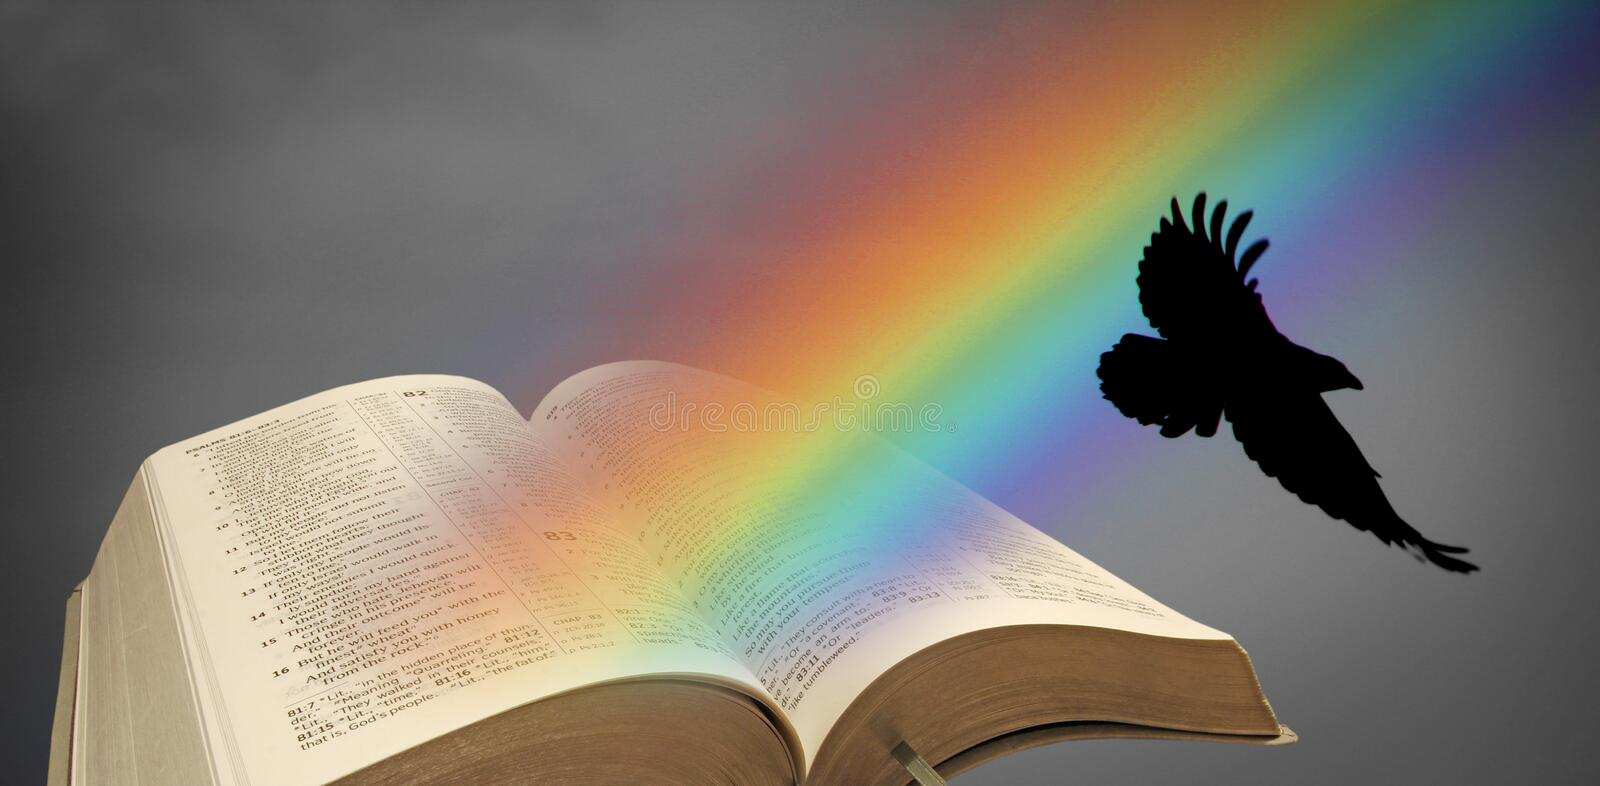 Noah rainbow raven open bible. Photo of open bible with noah`s rainbow and raven flying out of pages stock illustration